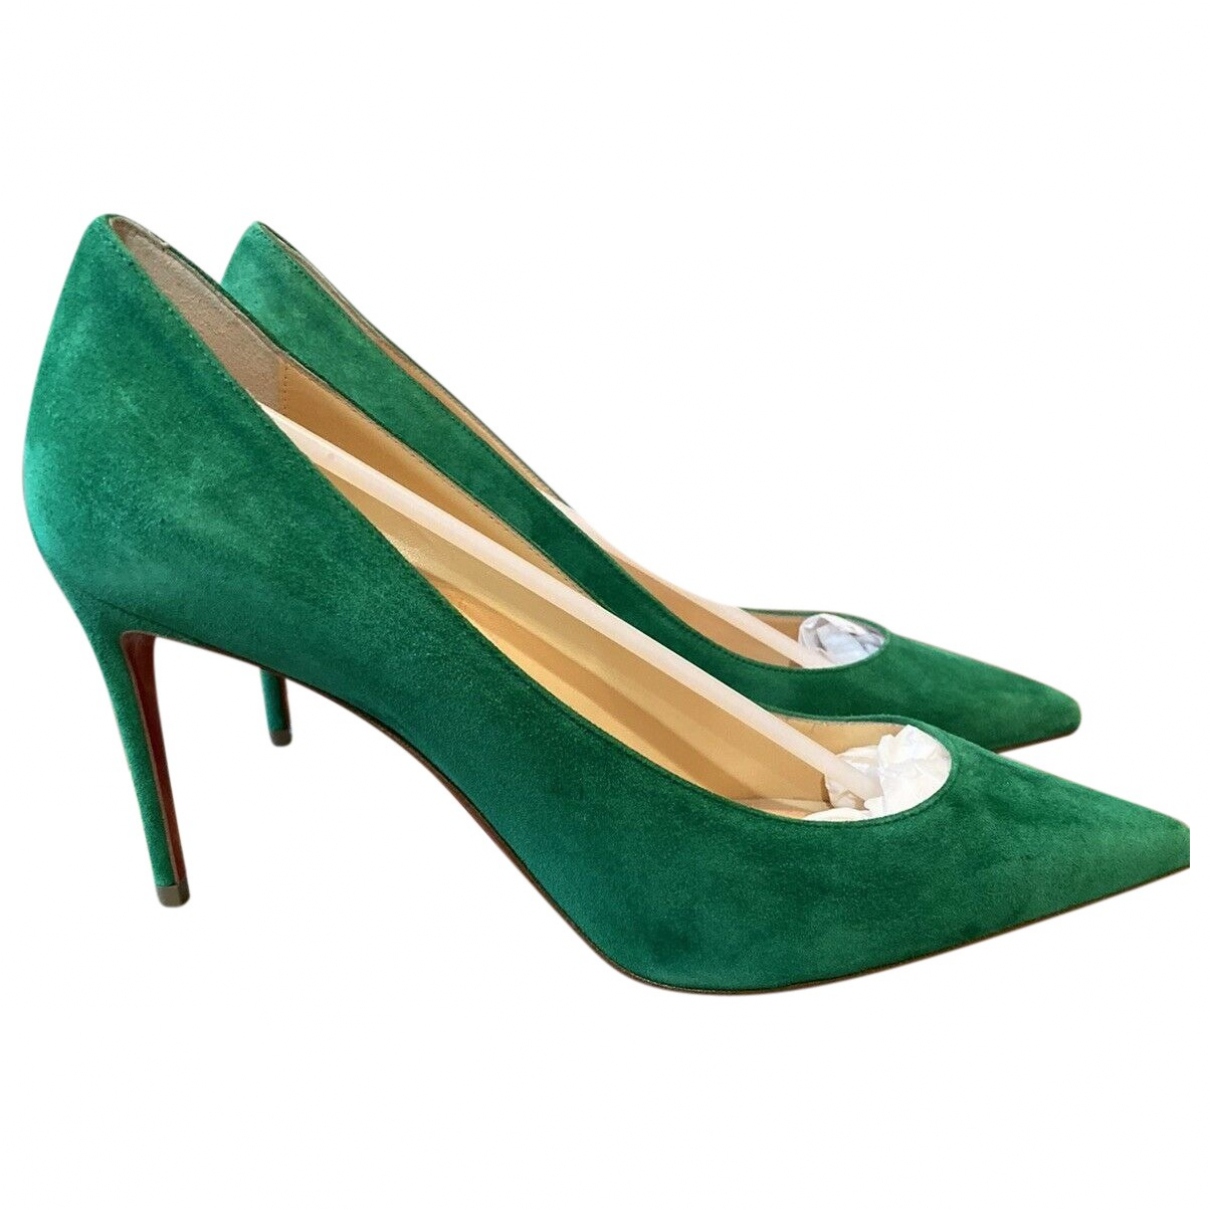 Christian Louboutin \N Green Suede Heels for Women 35.5 EU